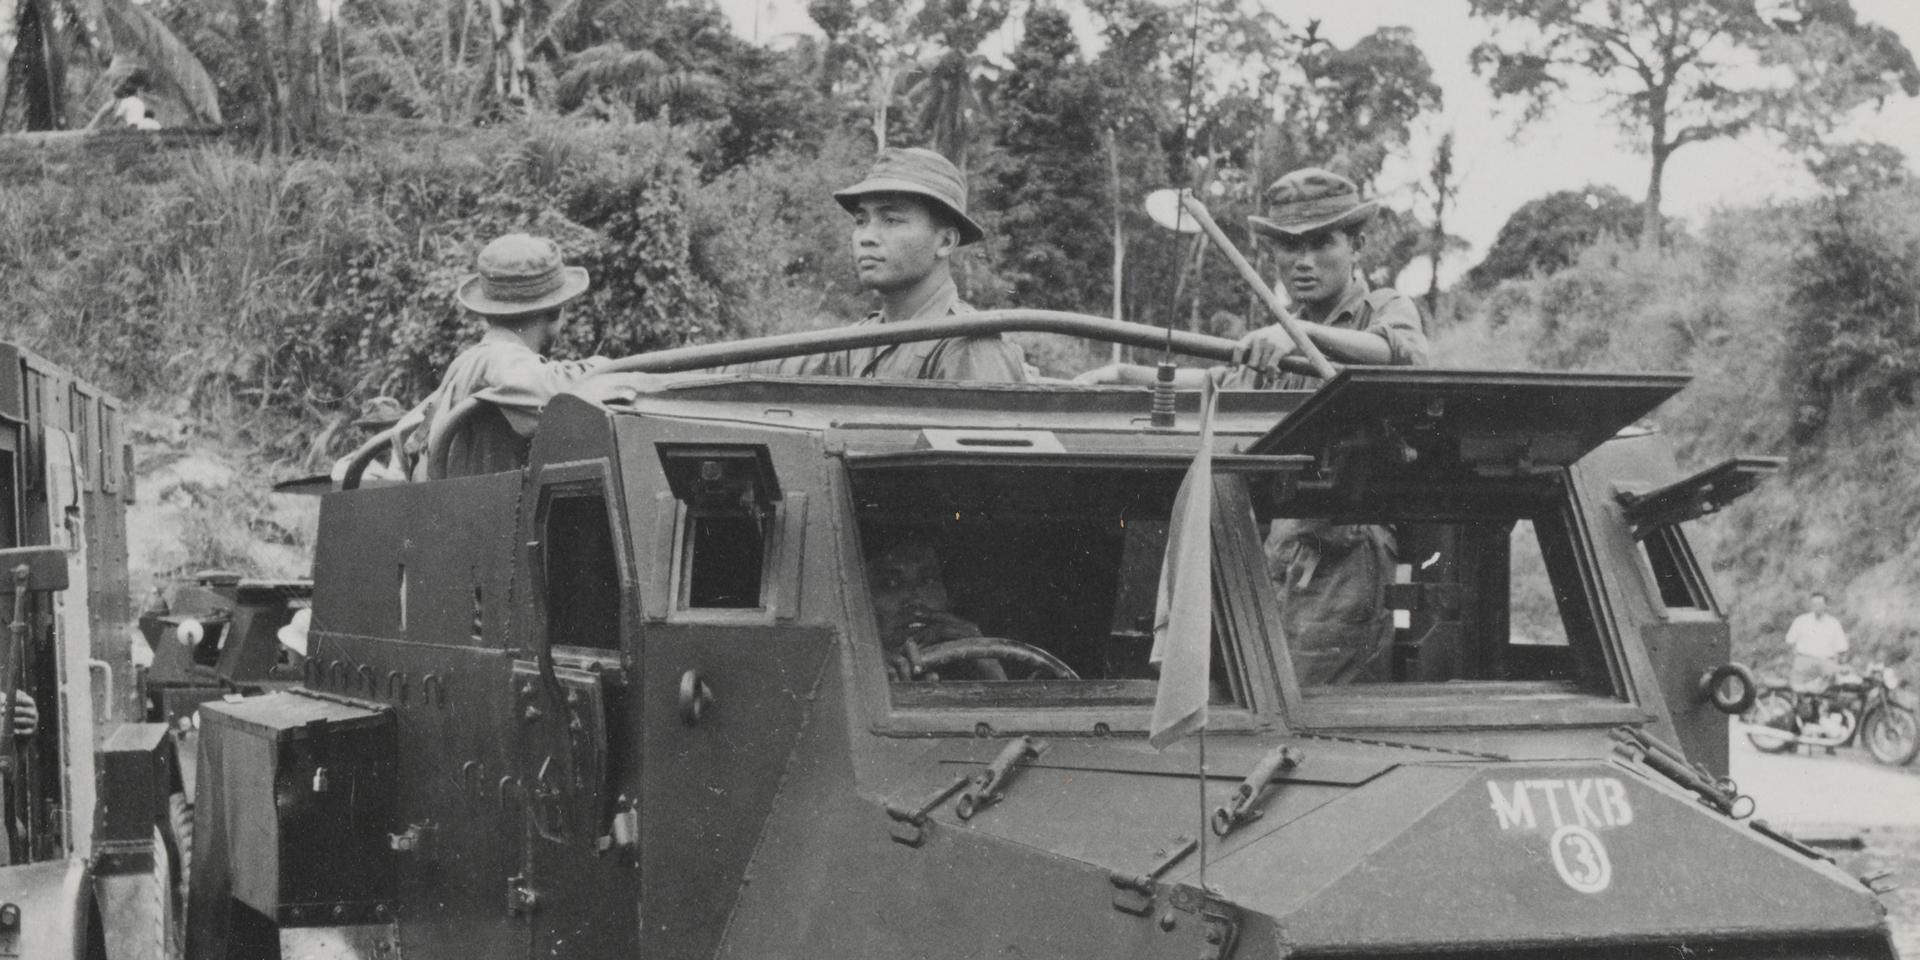 Malayan police in an armoured car, 1952